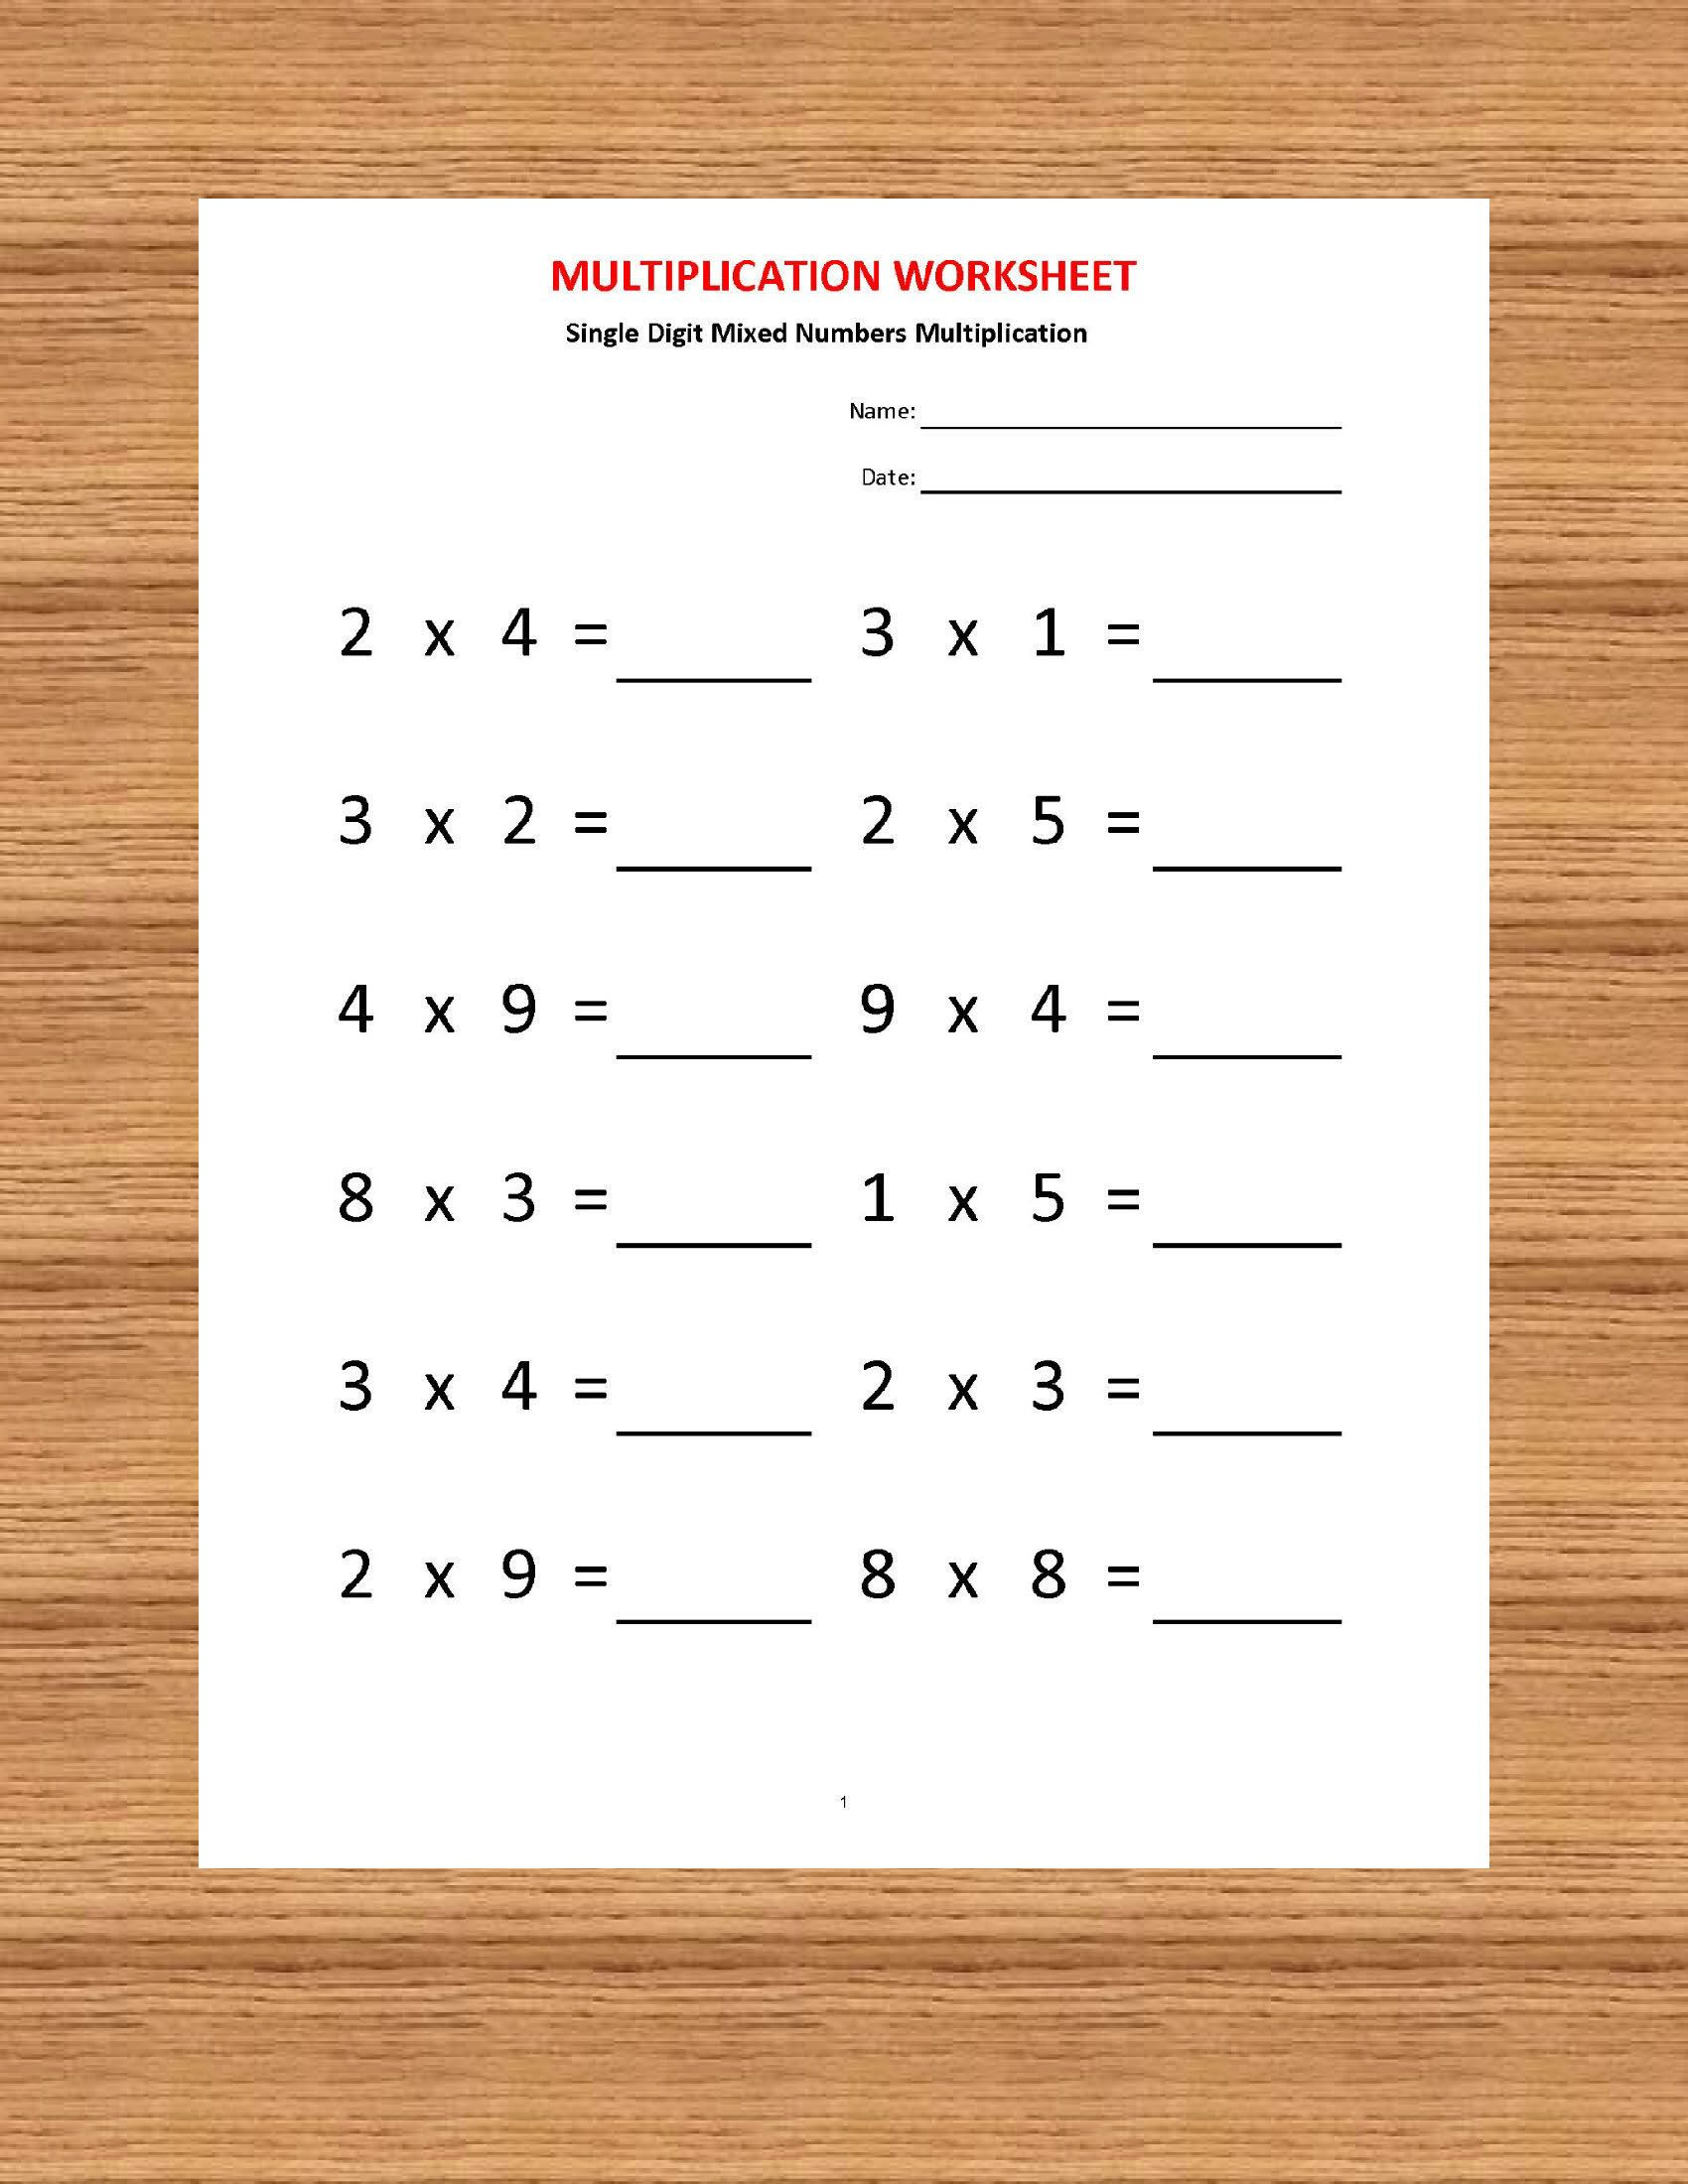 Multiplication Worksheets, Printable Worksheets with Worksheets On Multiplication For Grade 2